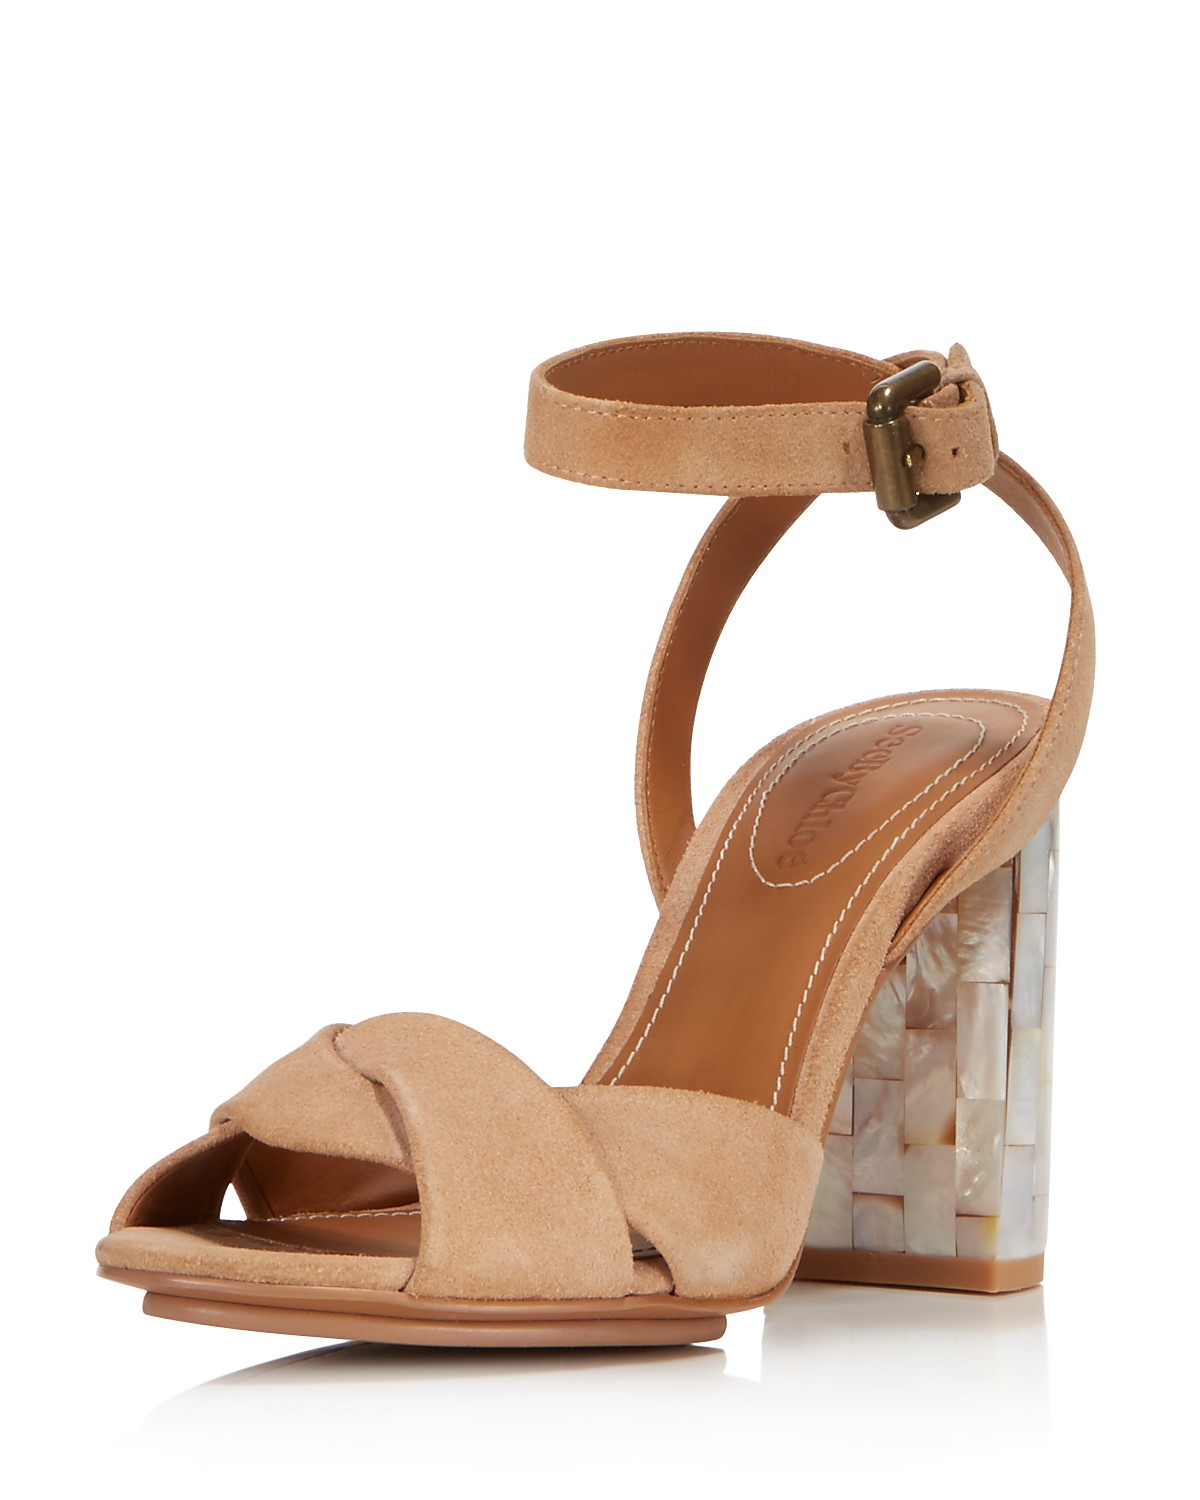 Chloé Women's Isida Suede & Mother-of-Pearl Block Heel Sandals LY2UCo7W